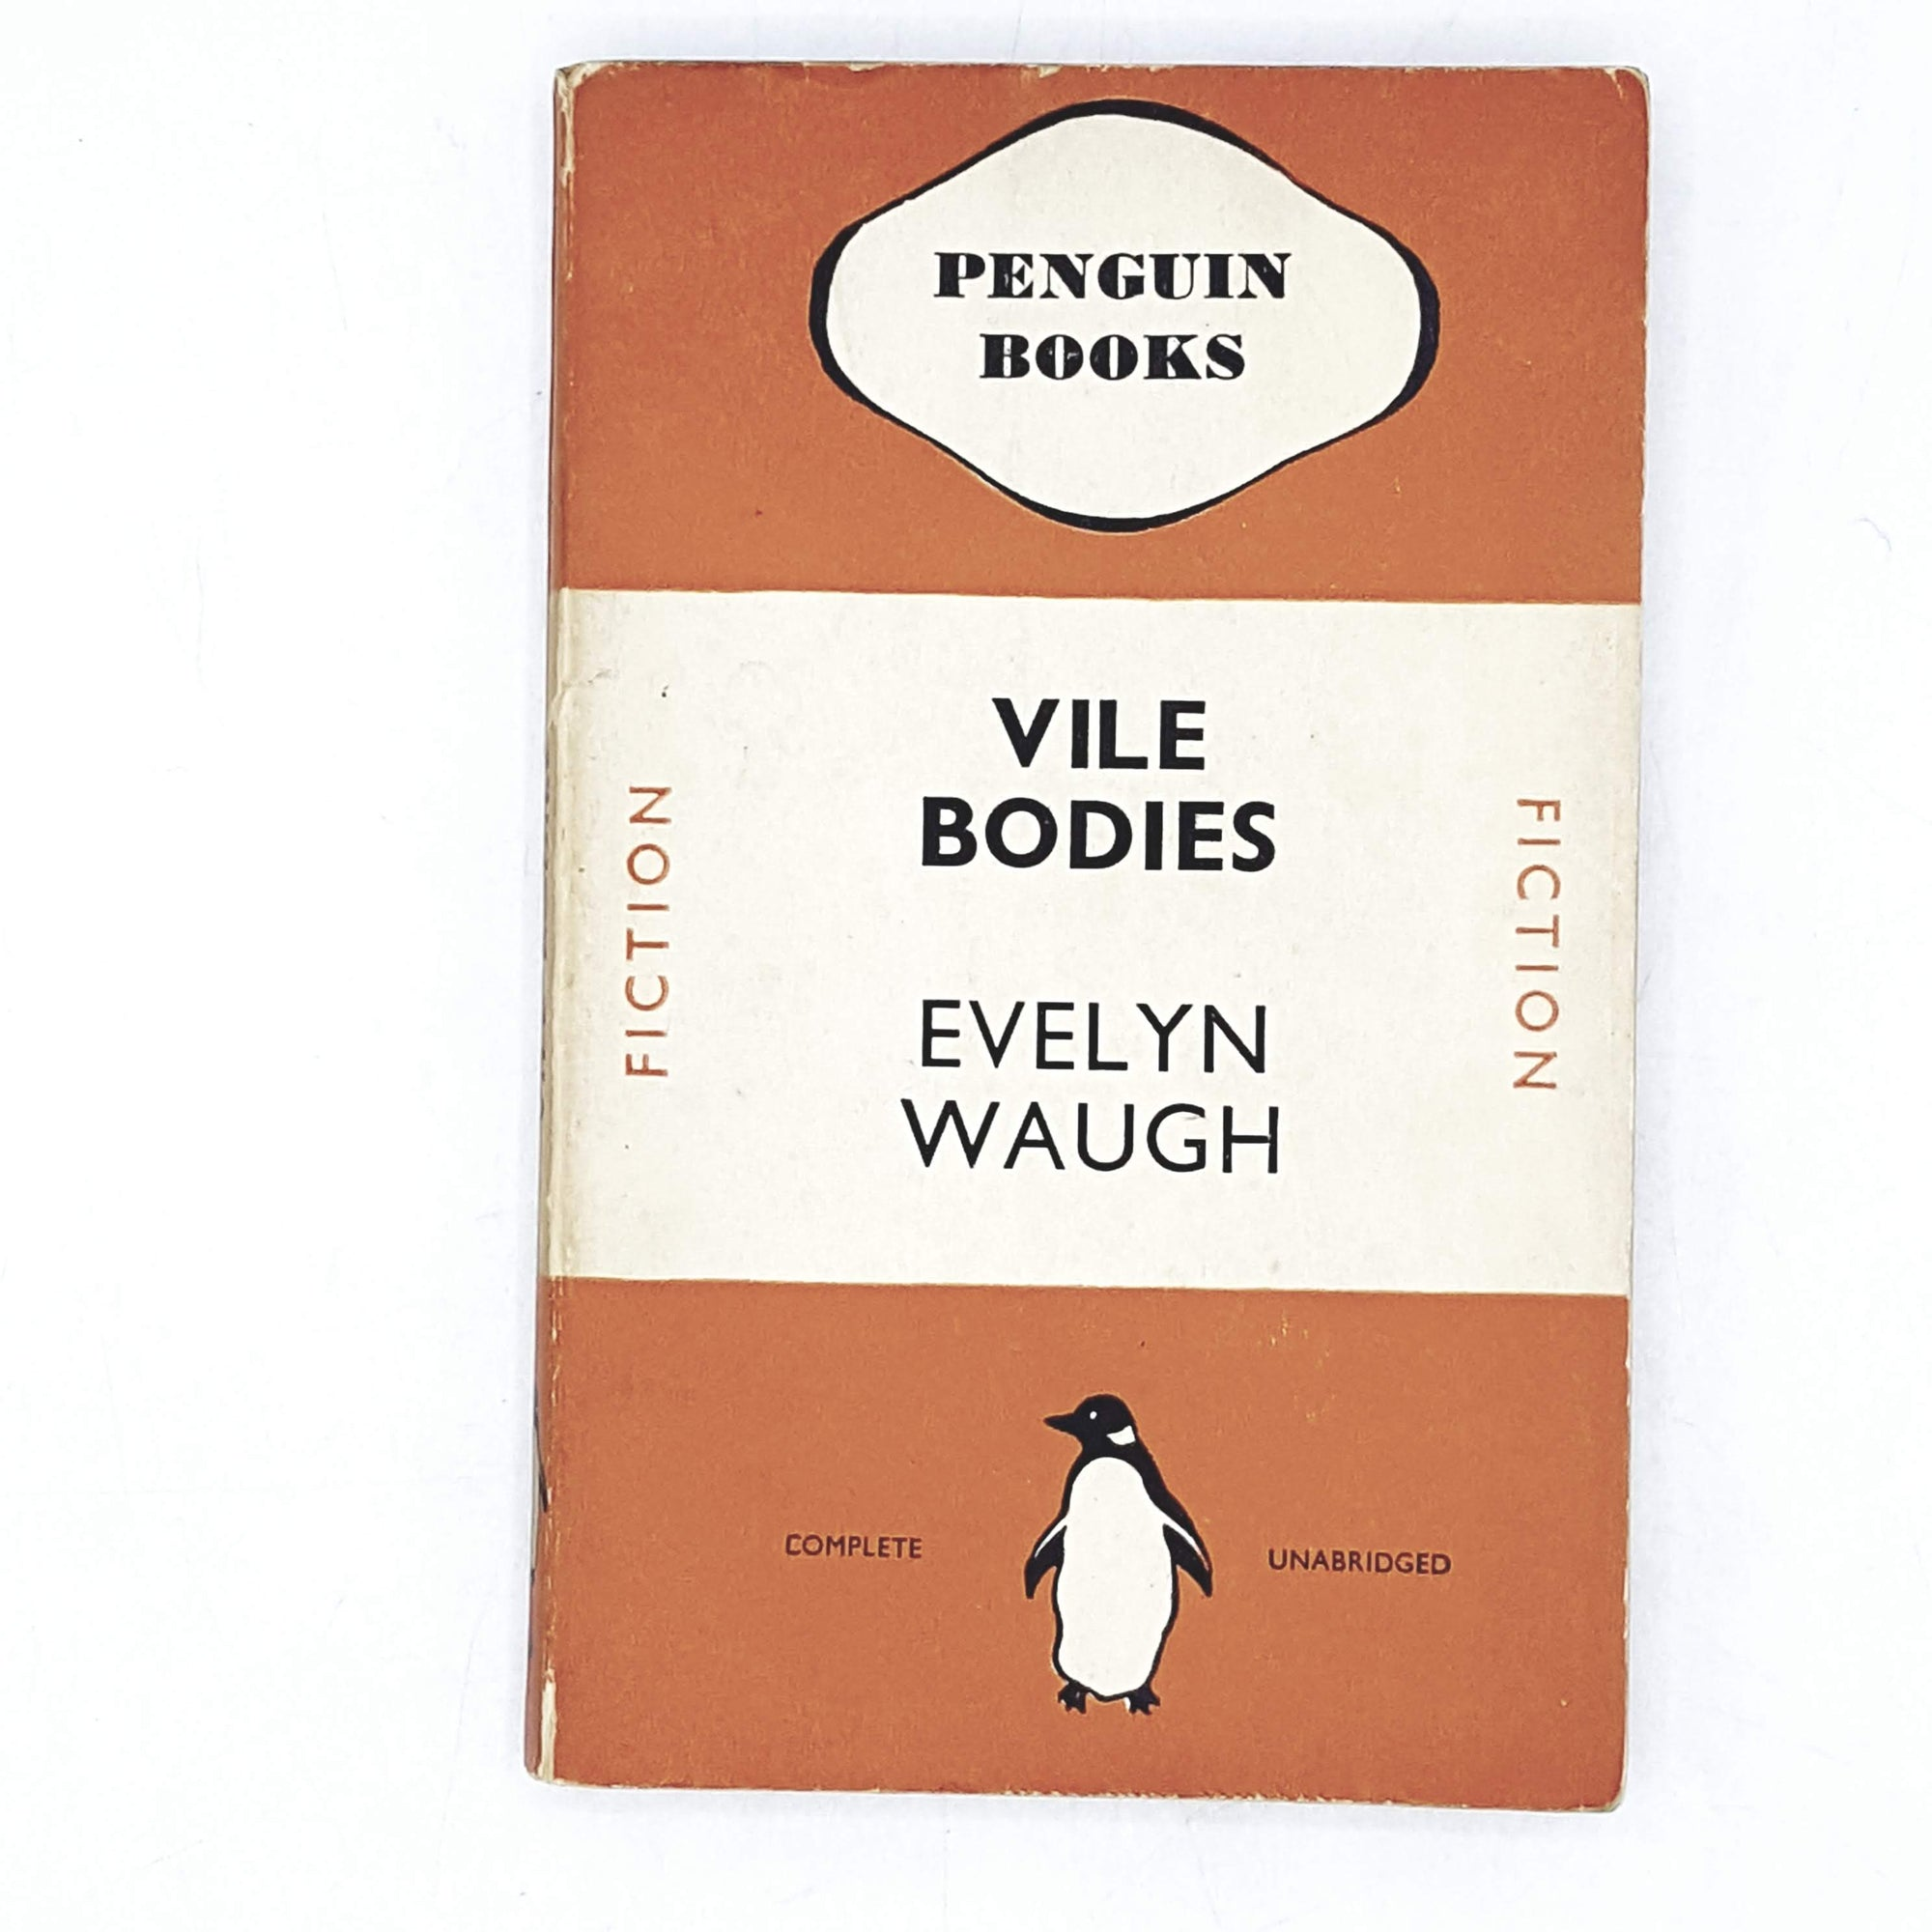 vintage-penguin-vile-bodies-by-evelyn-waugh-1938-orange-classic-literature-country-house-library